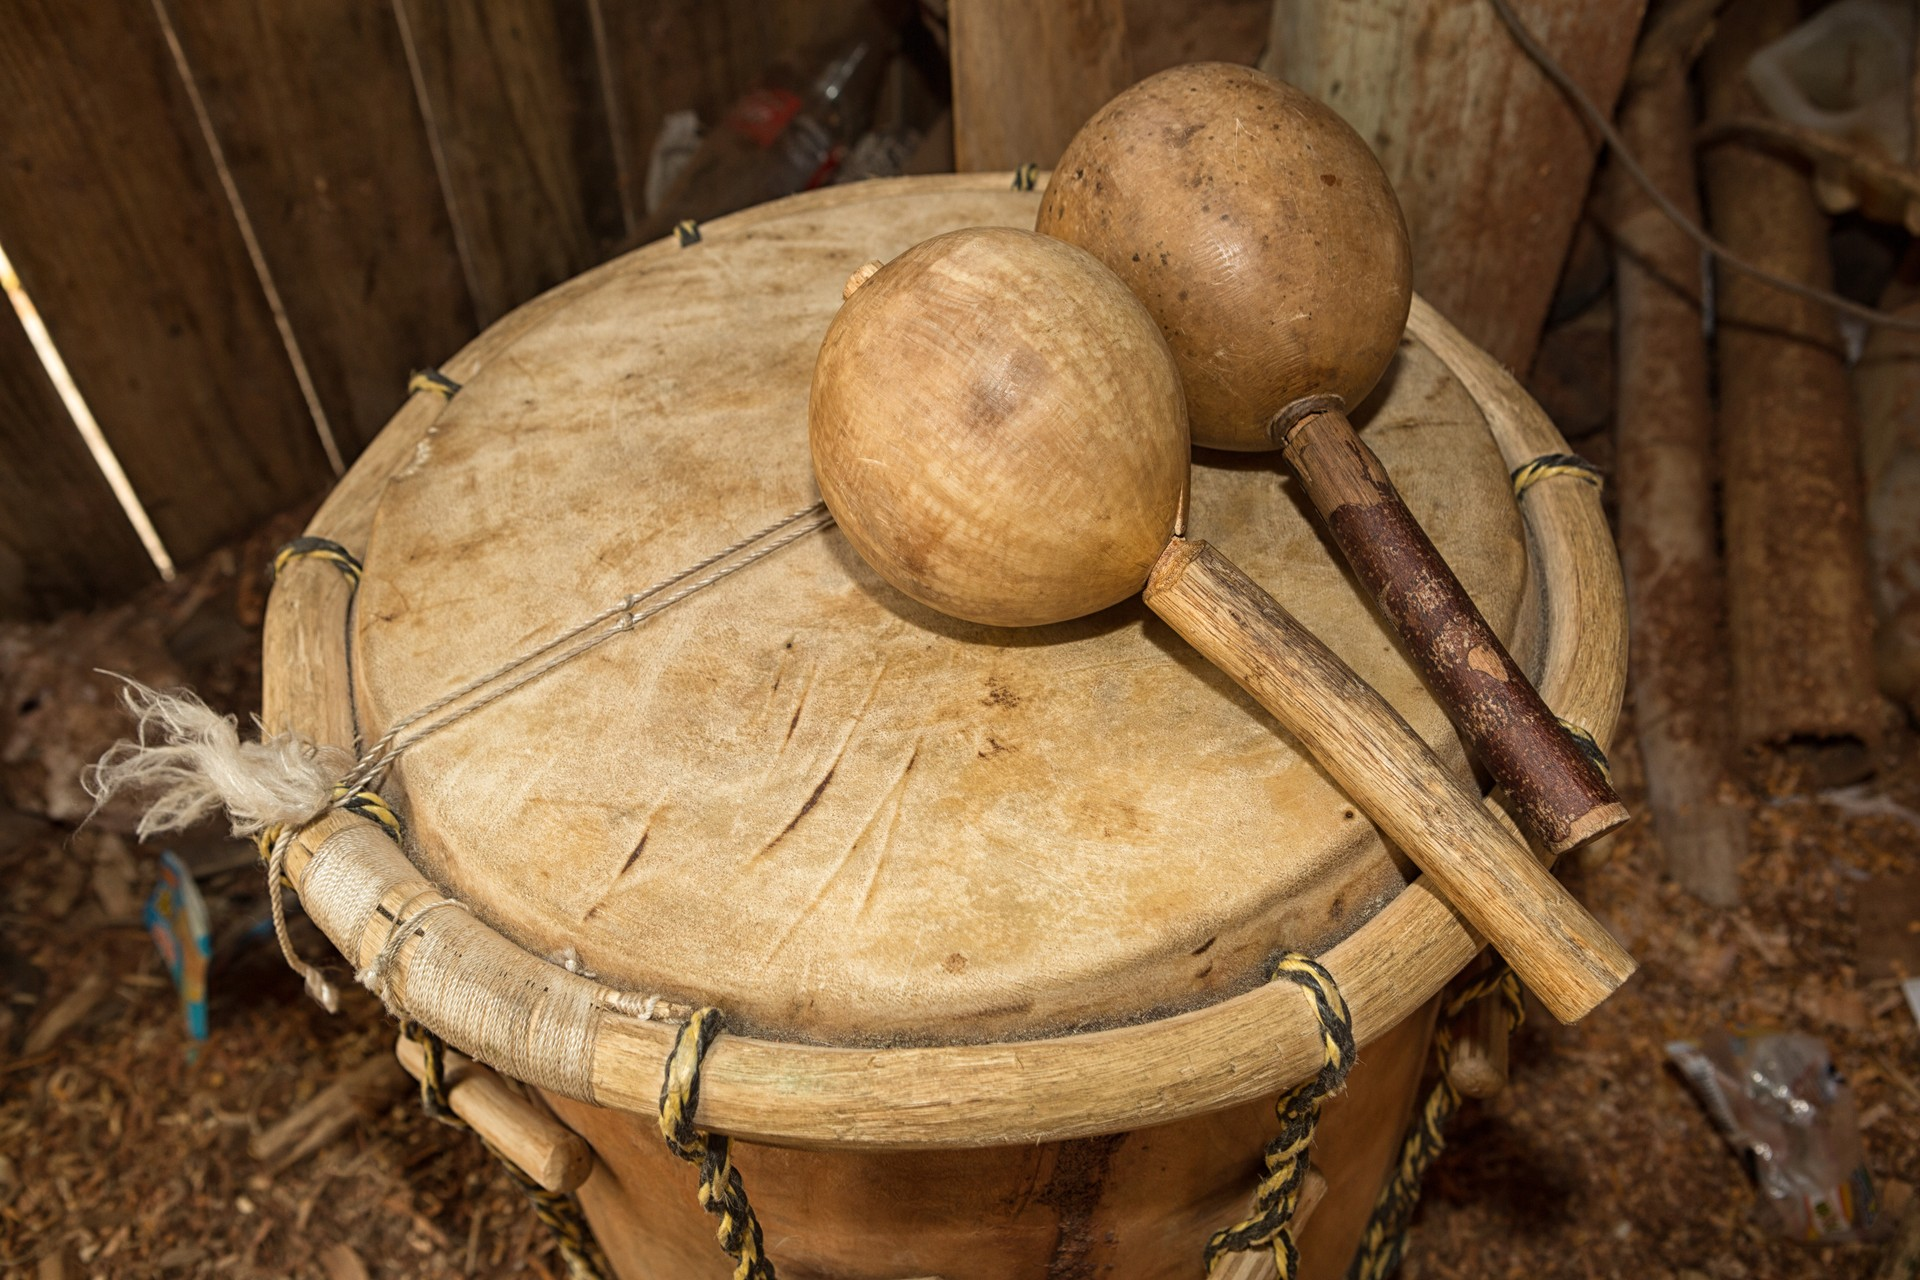 A traditional drum played by the Garifuna community in Belize